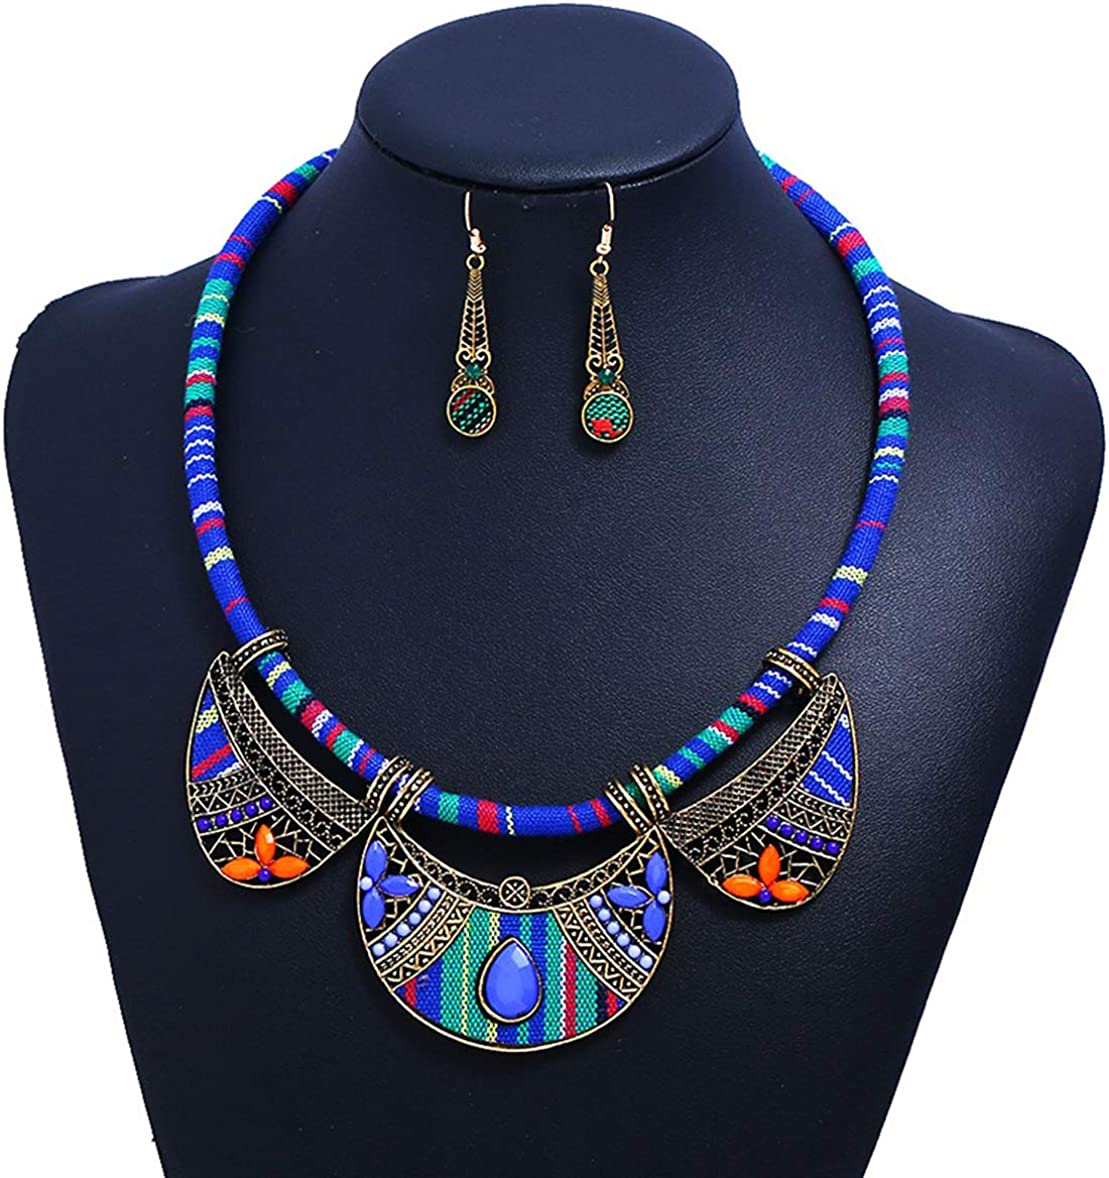 Alina Belle African Ethnic Colorful Collar Necklace Bohemia Necklace Earrings Jewelry Set